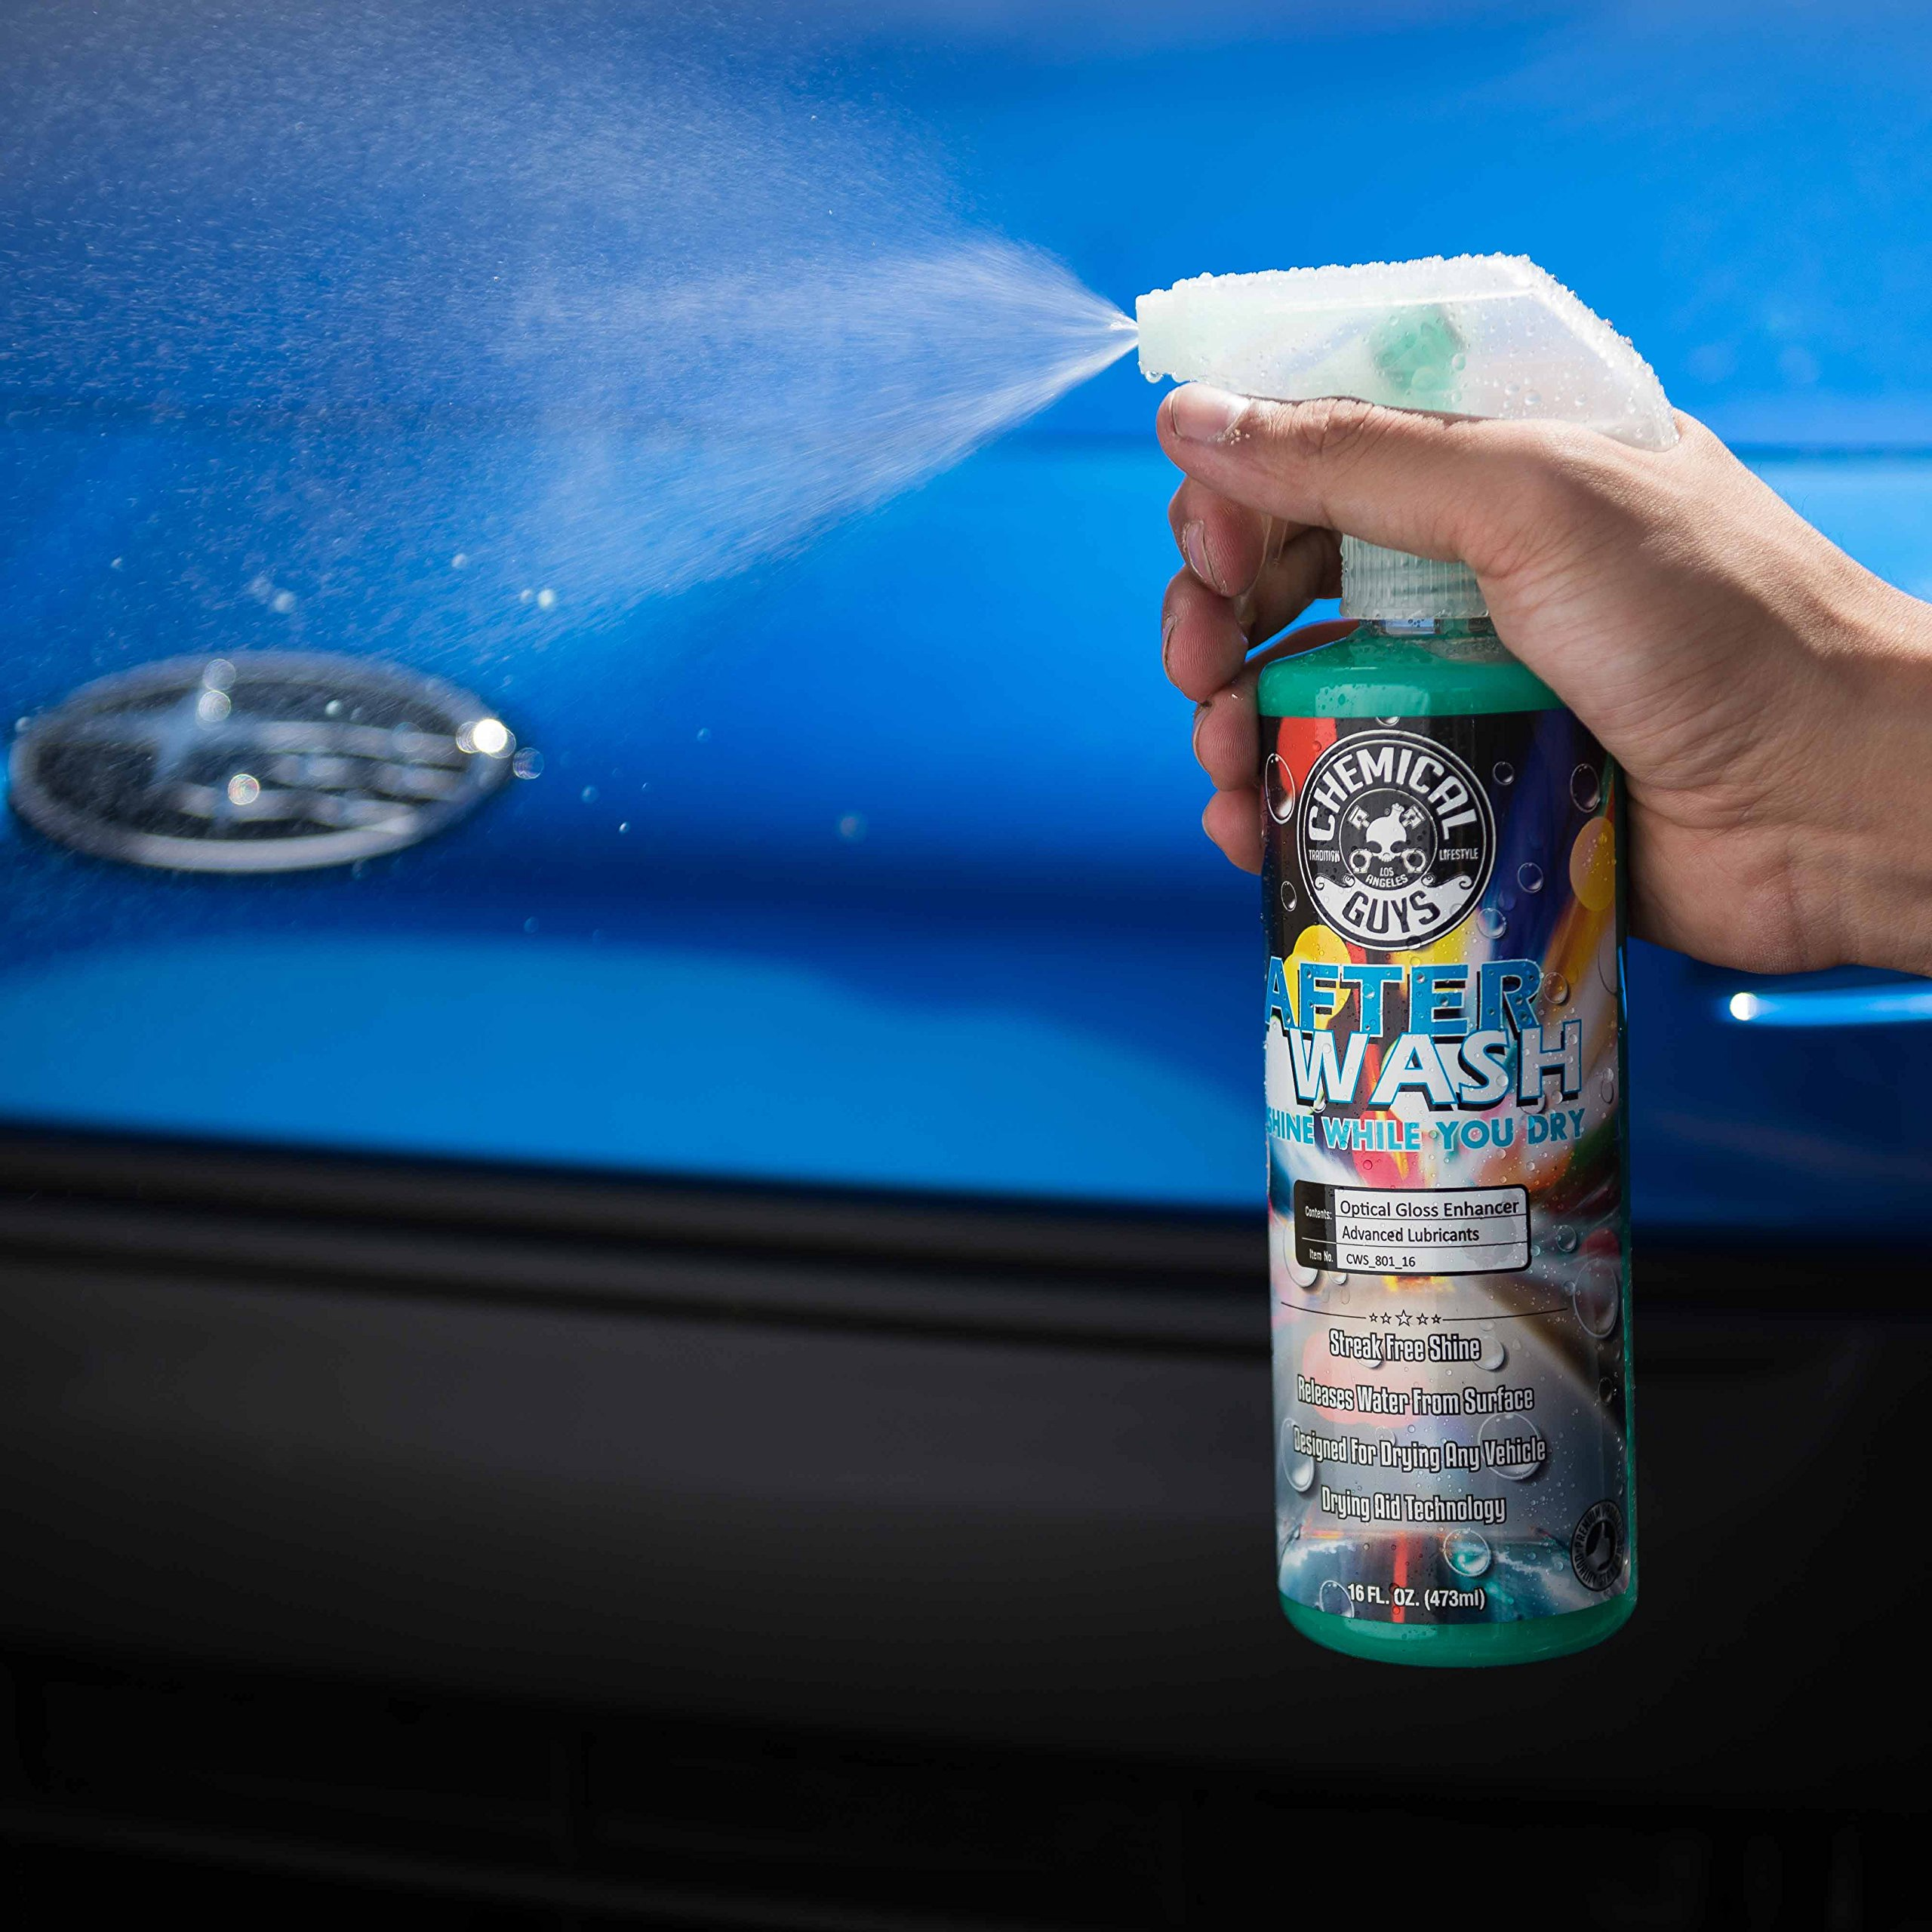 Chemical Guys CWS_801 After Wash Shine While You Dry Drying Agent with Hybrid Gloss Technology (1 Gal)